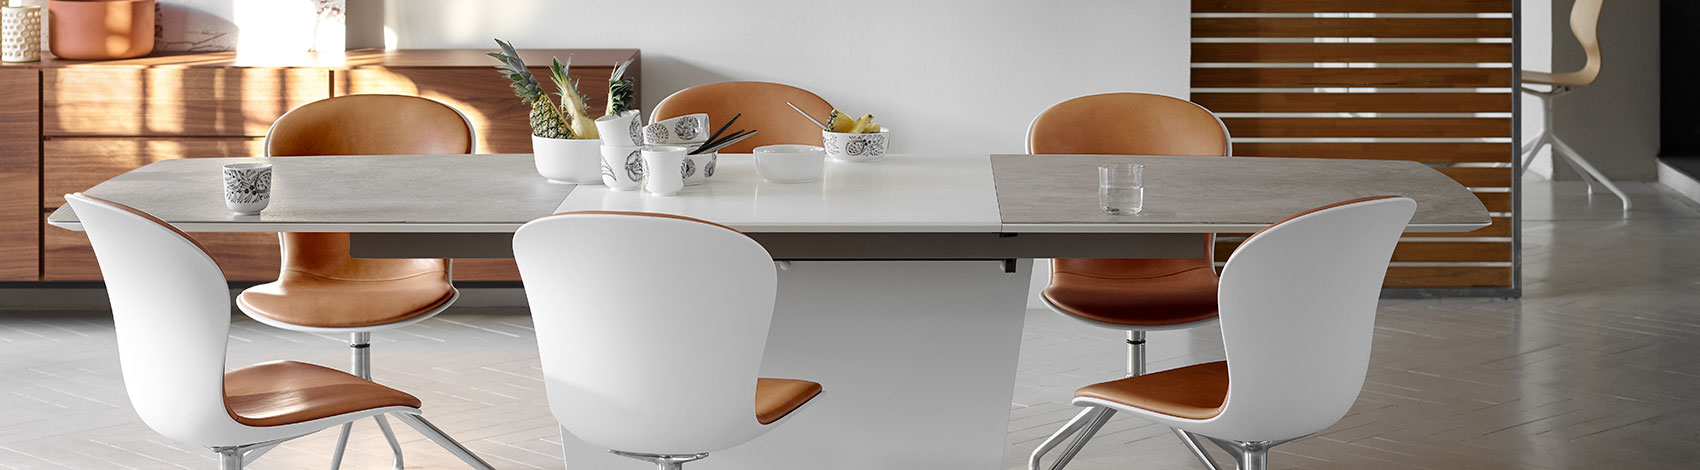 Milano table with Adelaide chairs with white shell and camel brown leather upholstery and swivel function